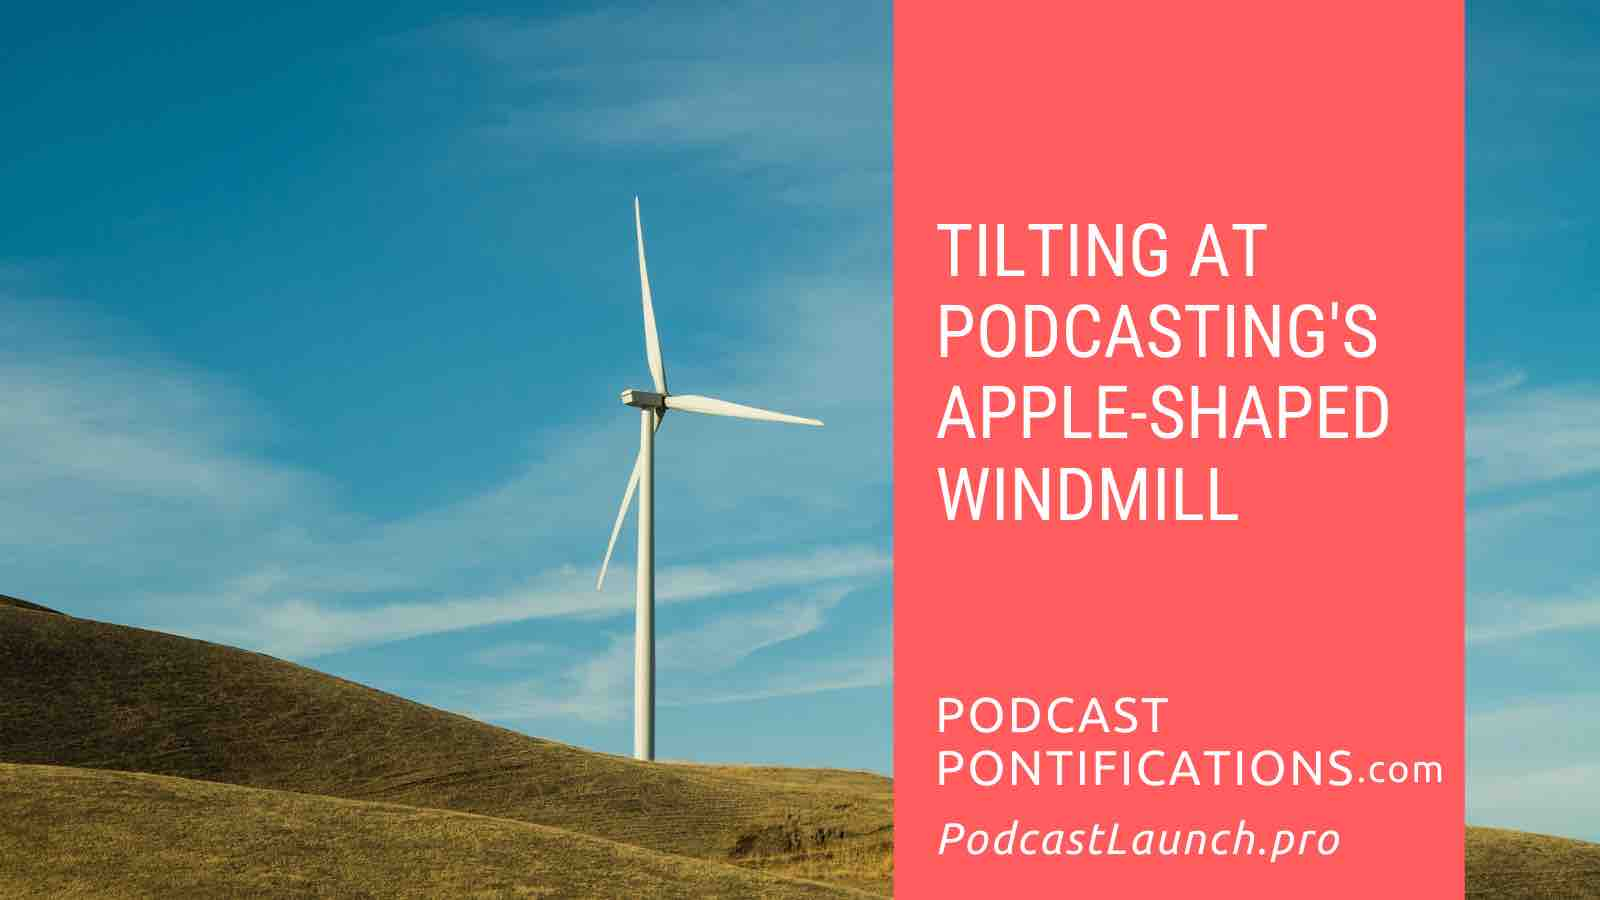 Tilting At Podcasting's Apple-Shaped Windmill